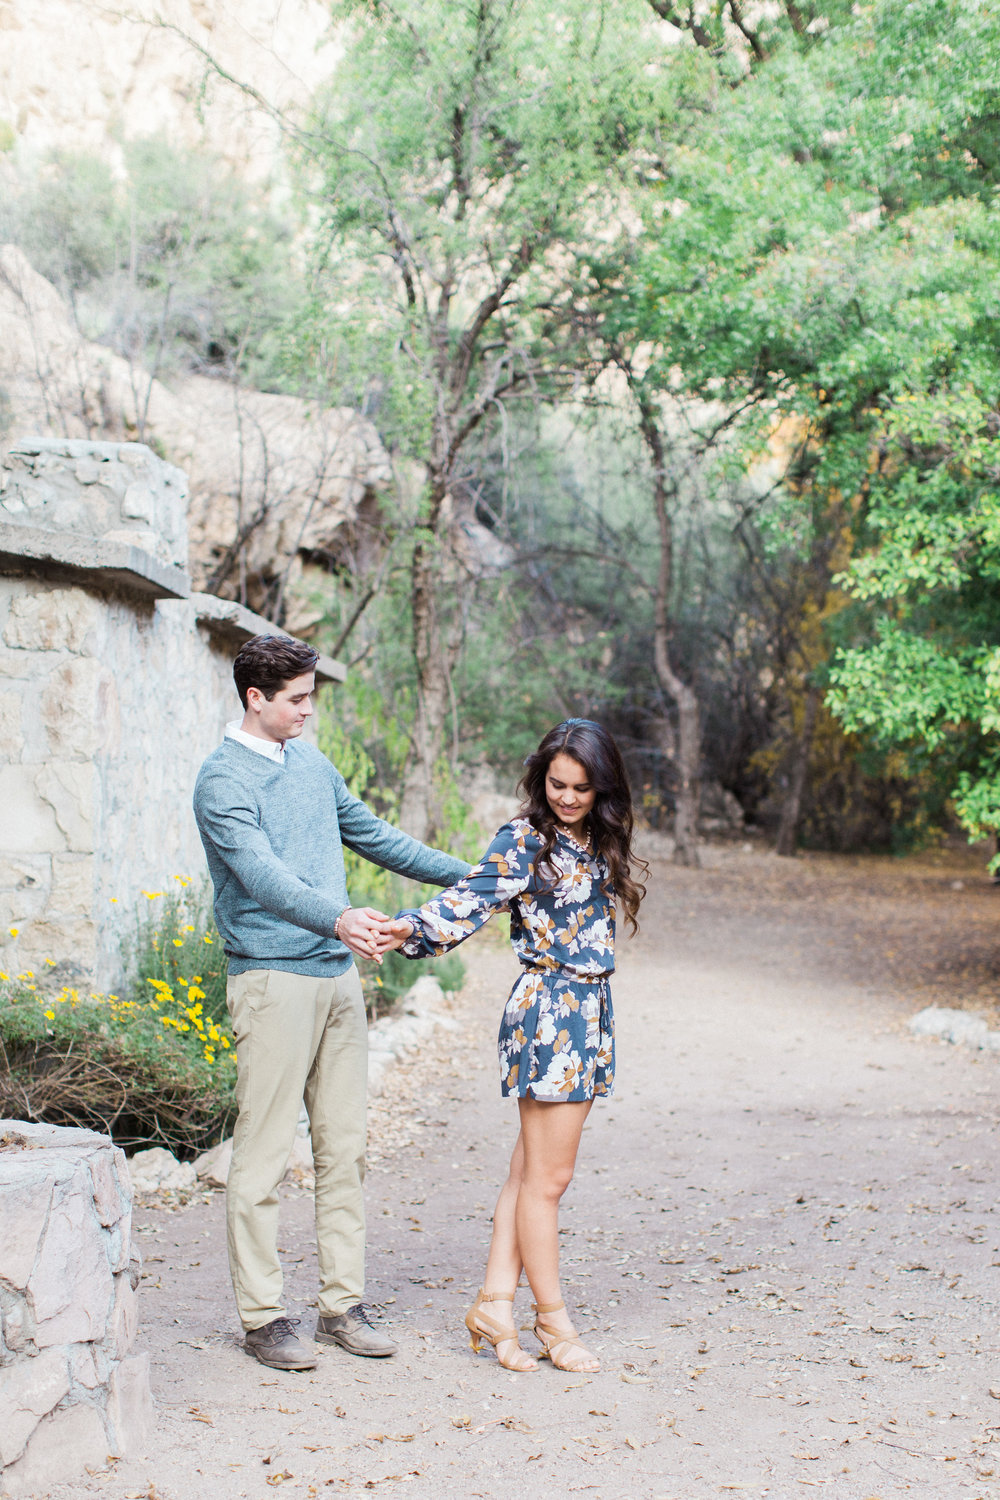 Boyce Thompson Arboretum Engagement